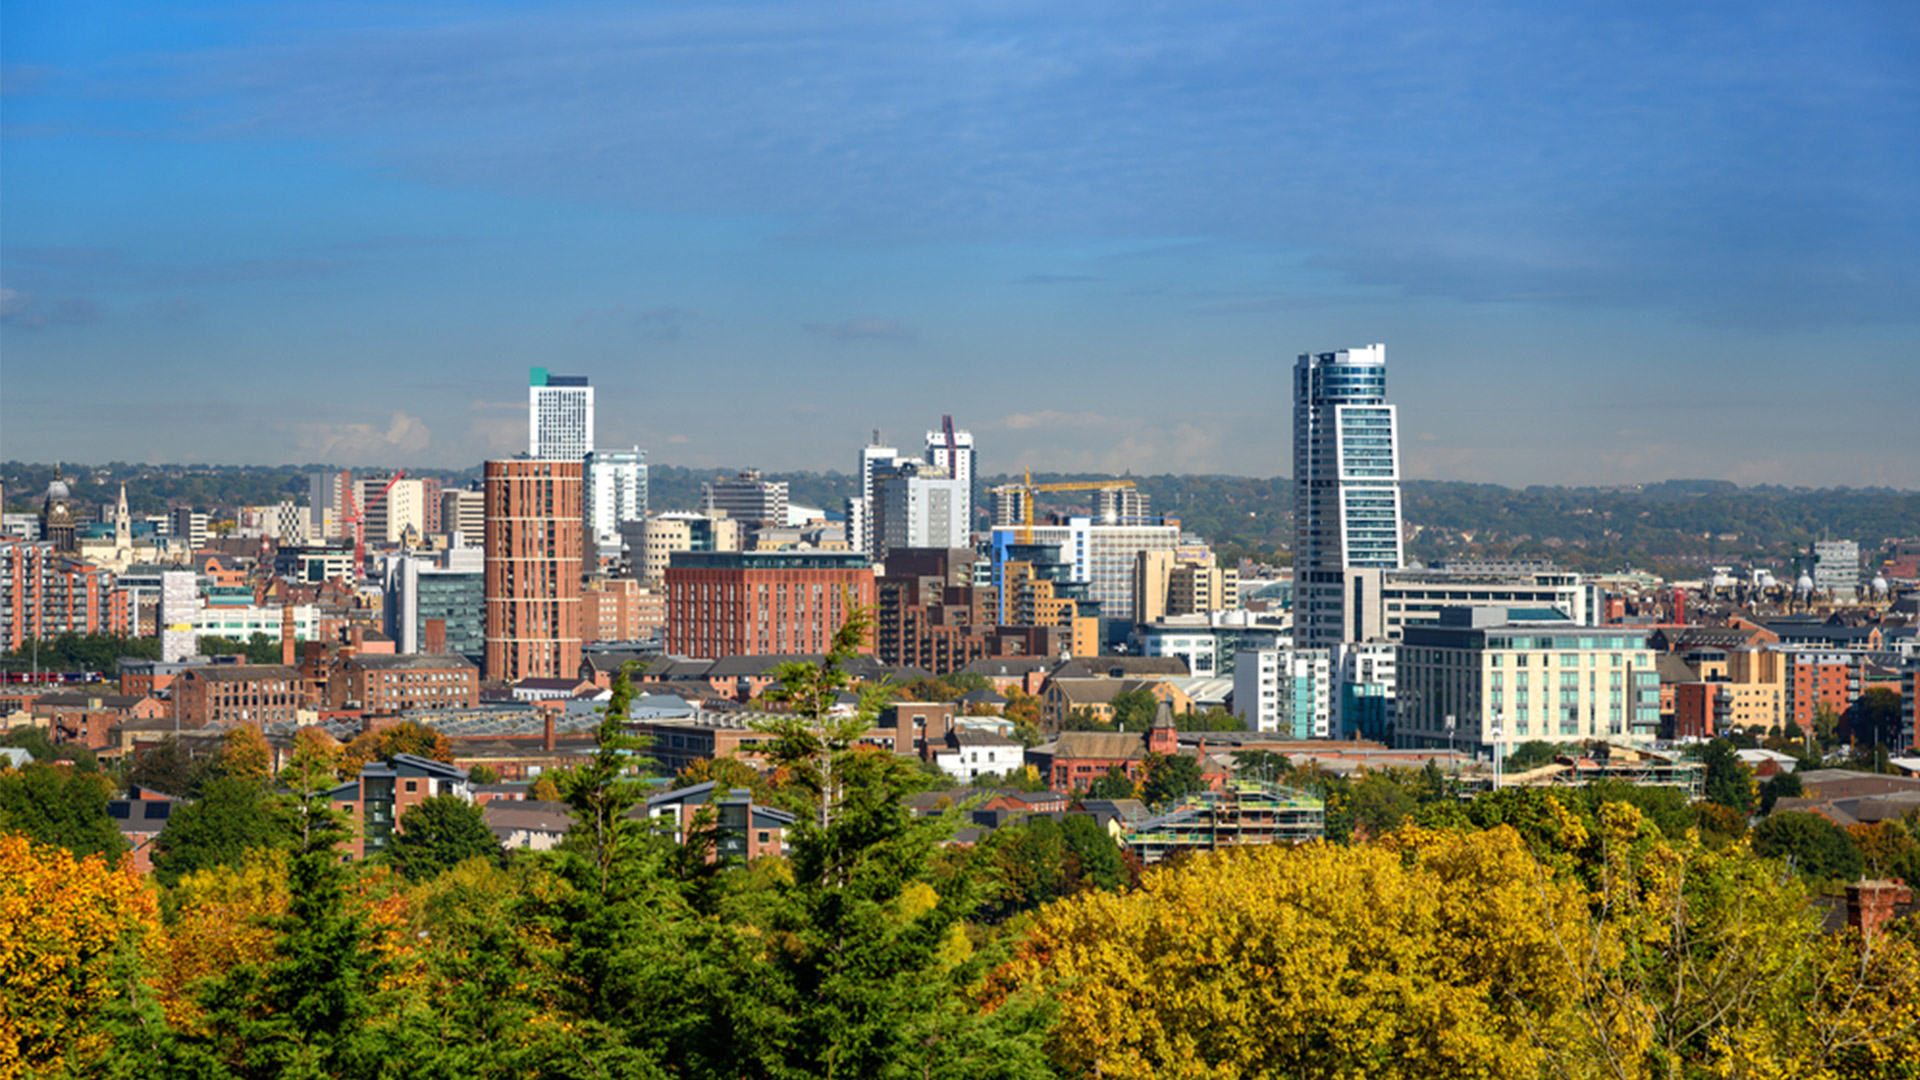 Leeds City Council are supporting businesses in Leeds